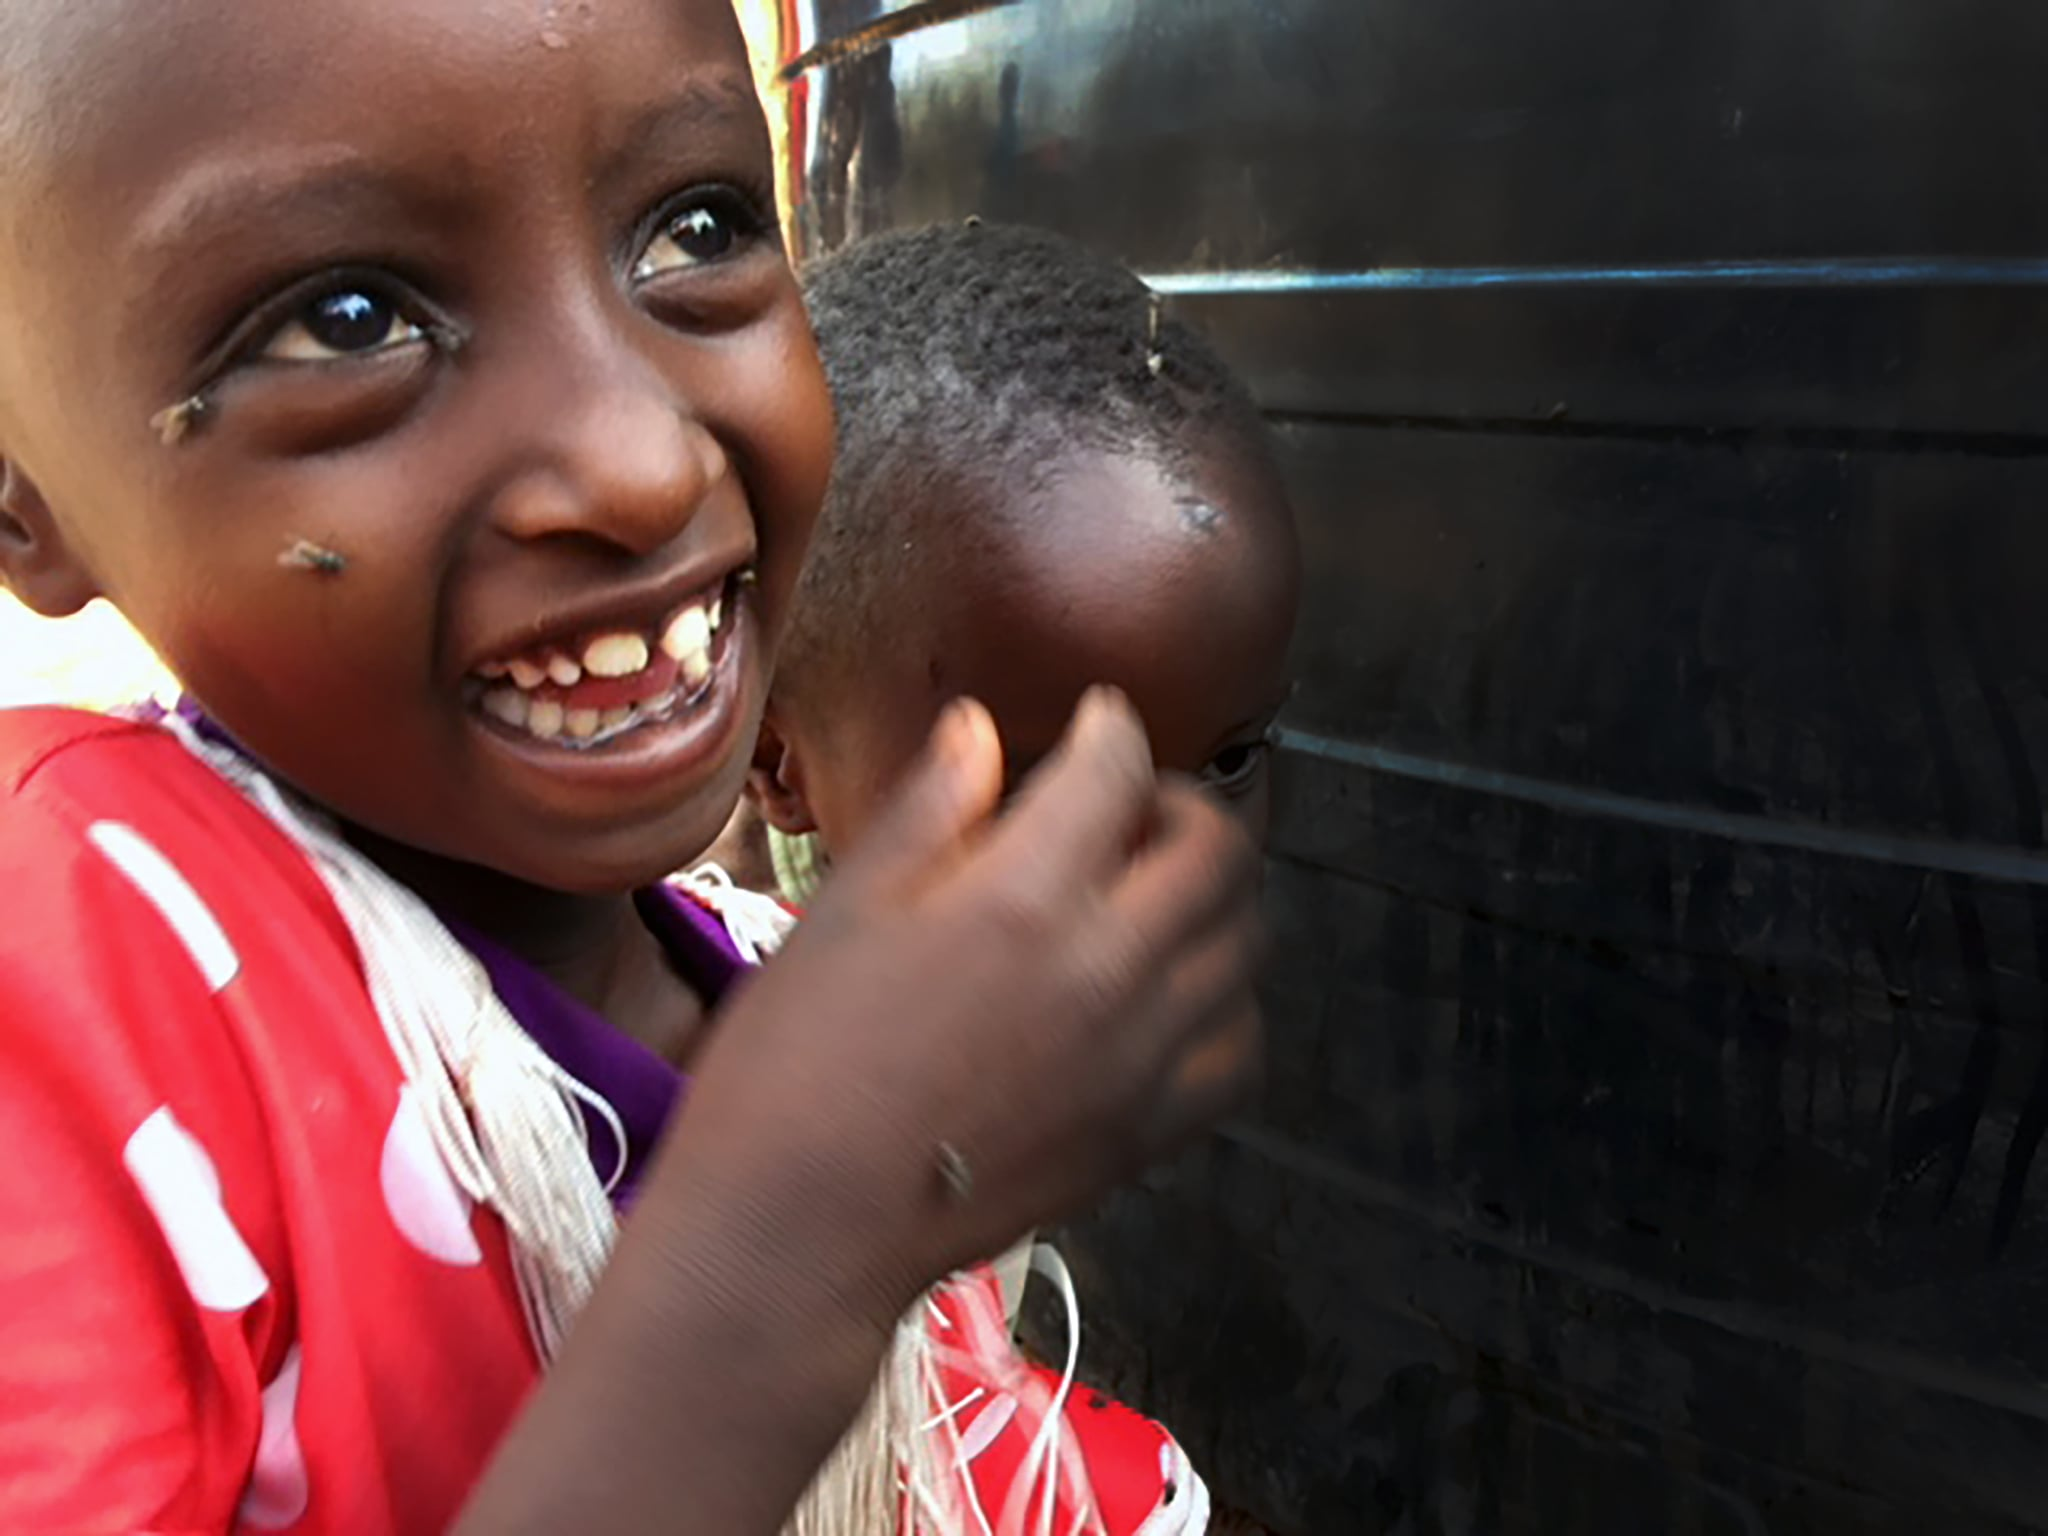 This little girl is so excited as their newly donated tank is being filled with safe water.